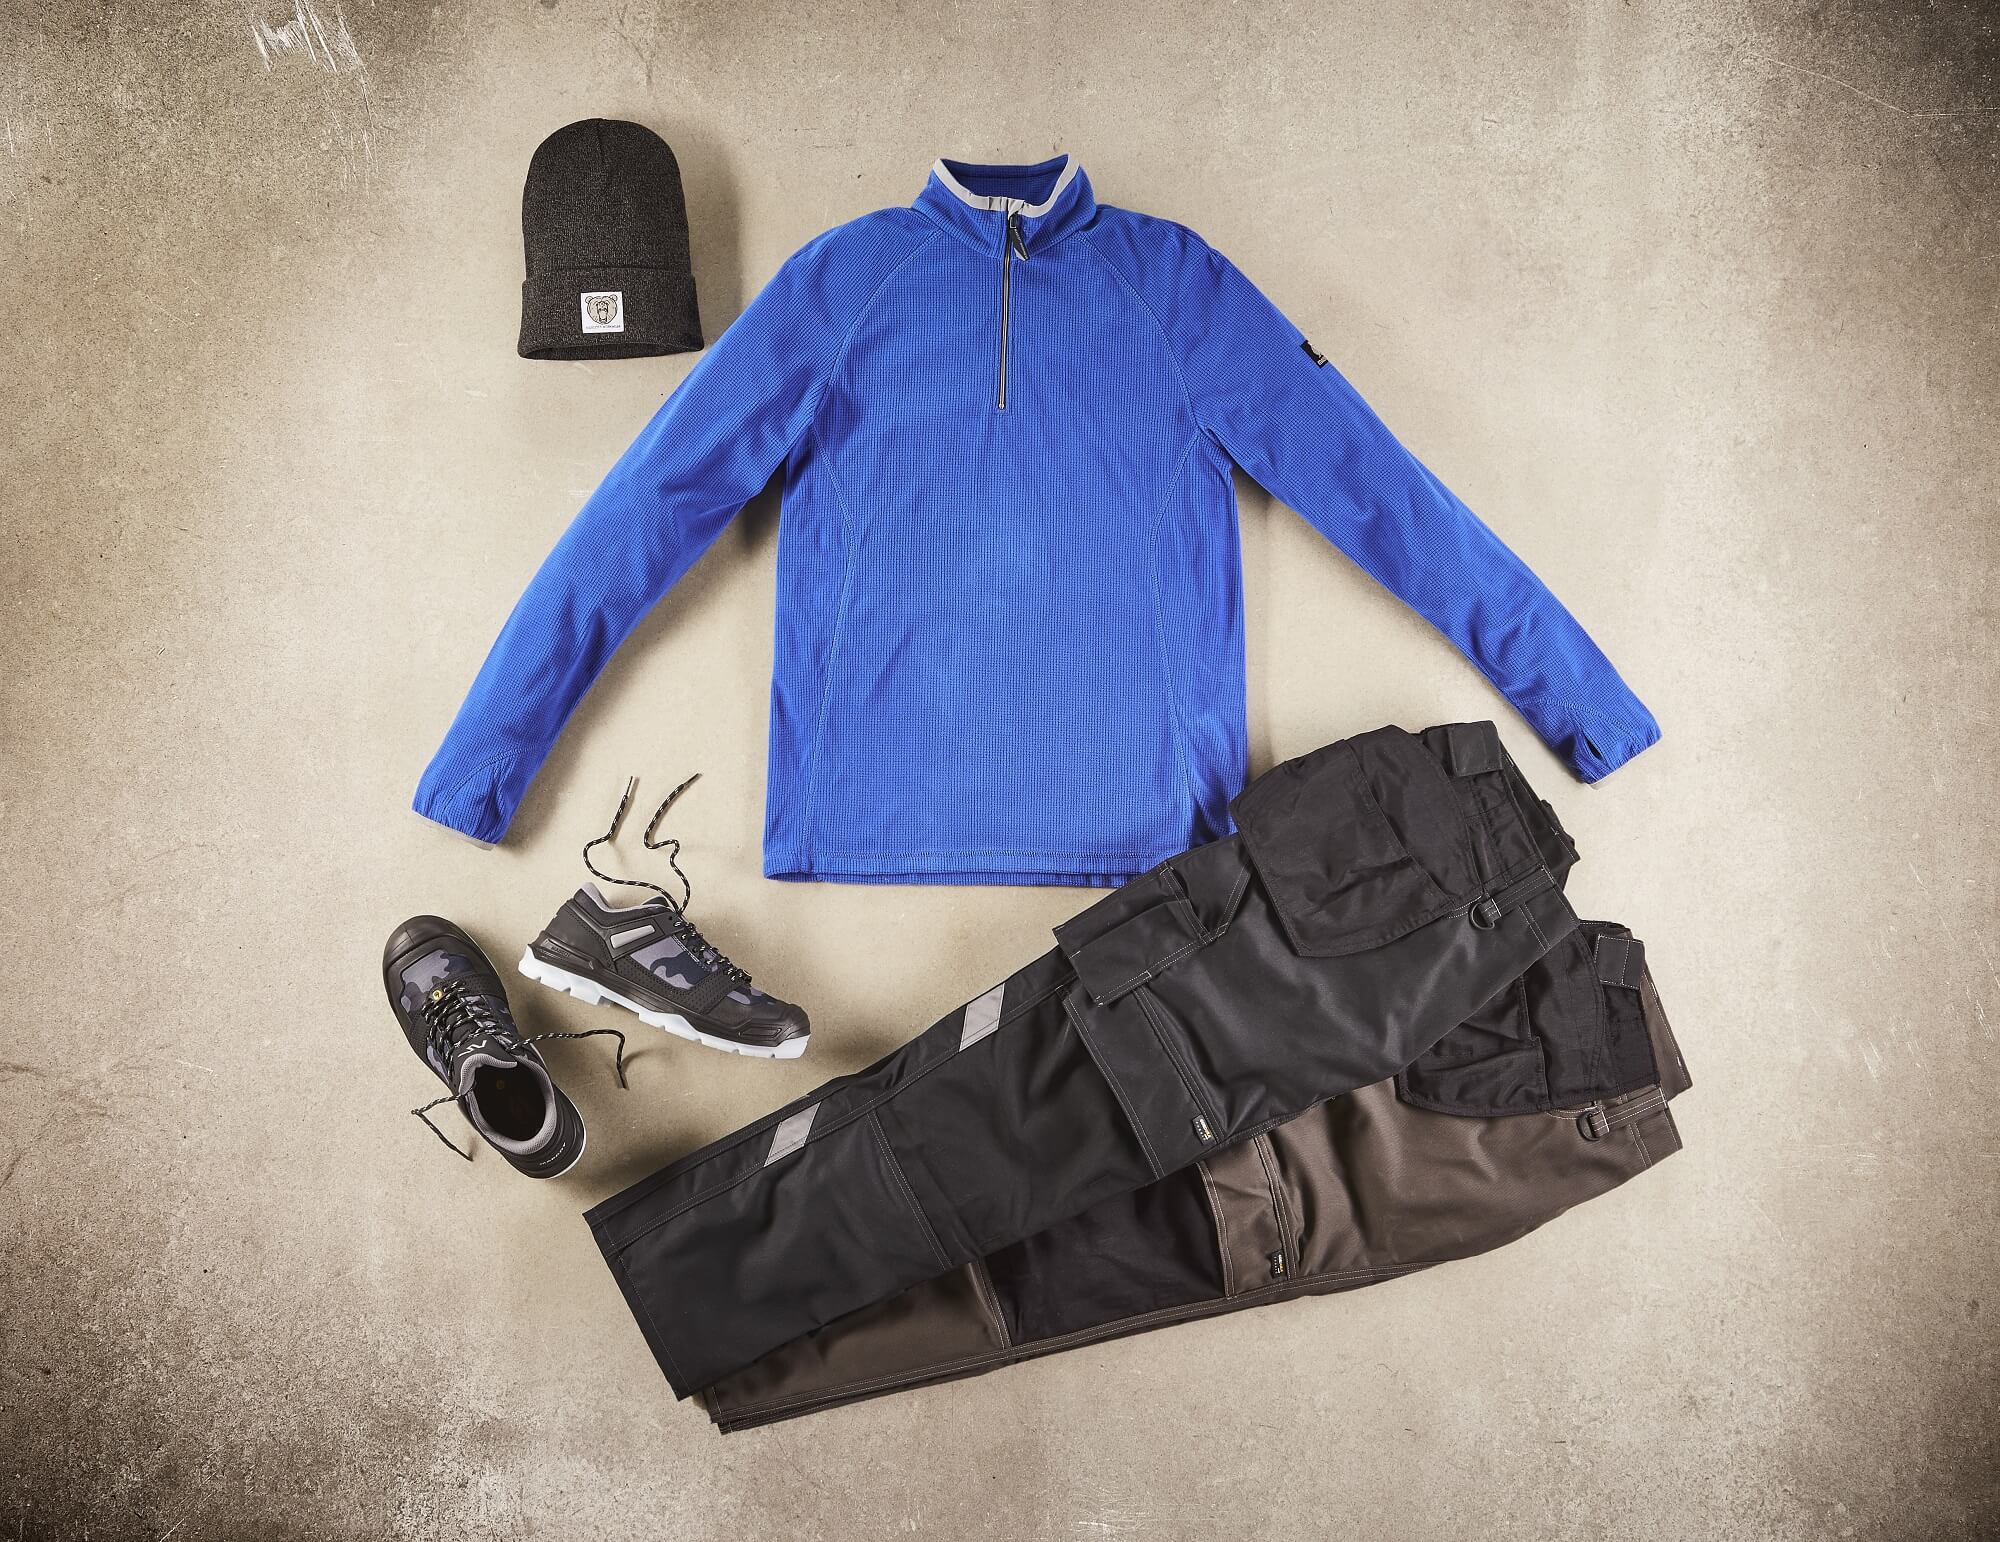 Half Zipped Jumper & Trousers with kneepad pockets and holster pockets  - Royal blue - Collage